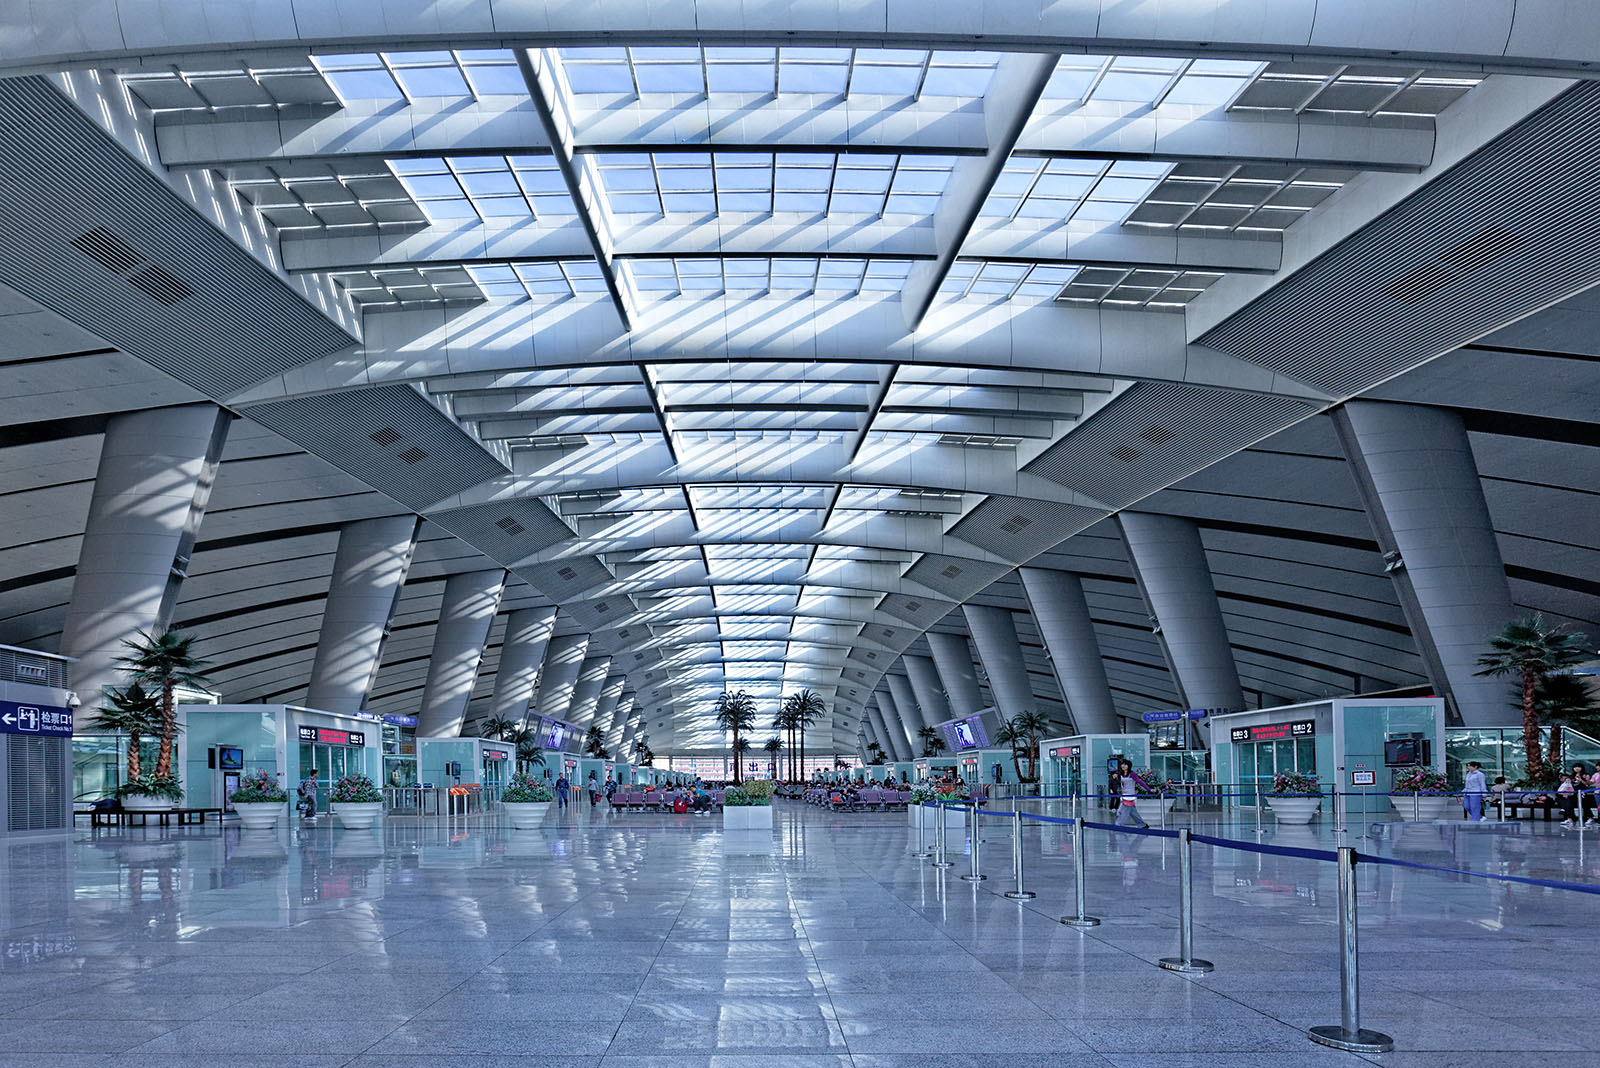 Interior architectural photography of the Beijing South Railway Station in Beijing, China. Paul Dingman is an architectural photographer based in China and working throughout Asia and the Middle East. He is a specialist in the photography of large scale projects, tall buildings, hotels and resorts, interiors, transportation, airports, mixed-use, retail malls, and luxury real estate.